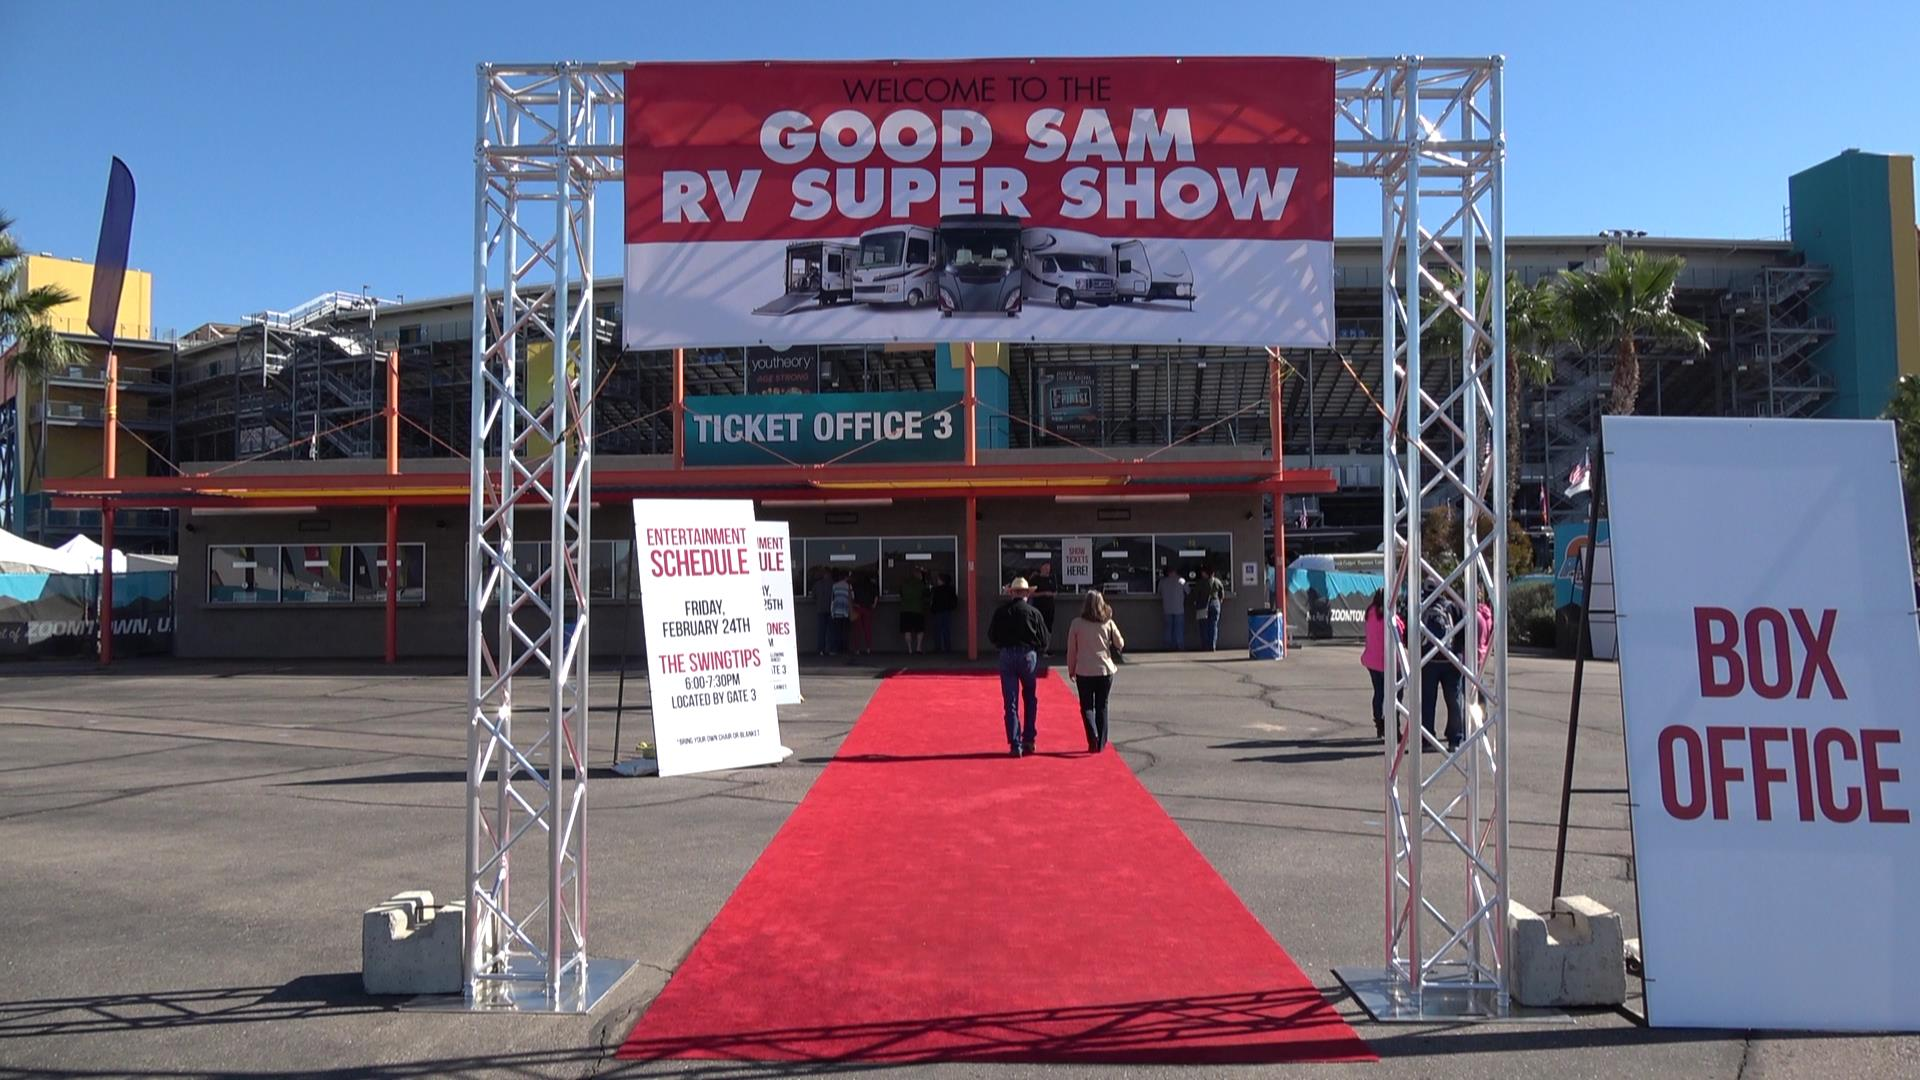 Good Sam RV Super Show